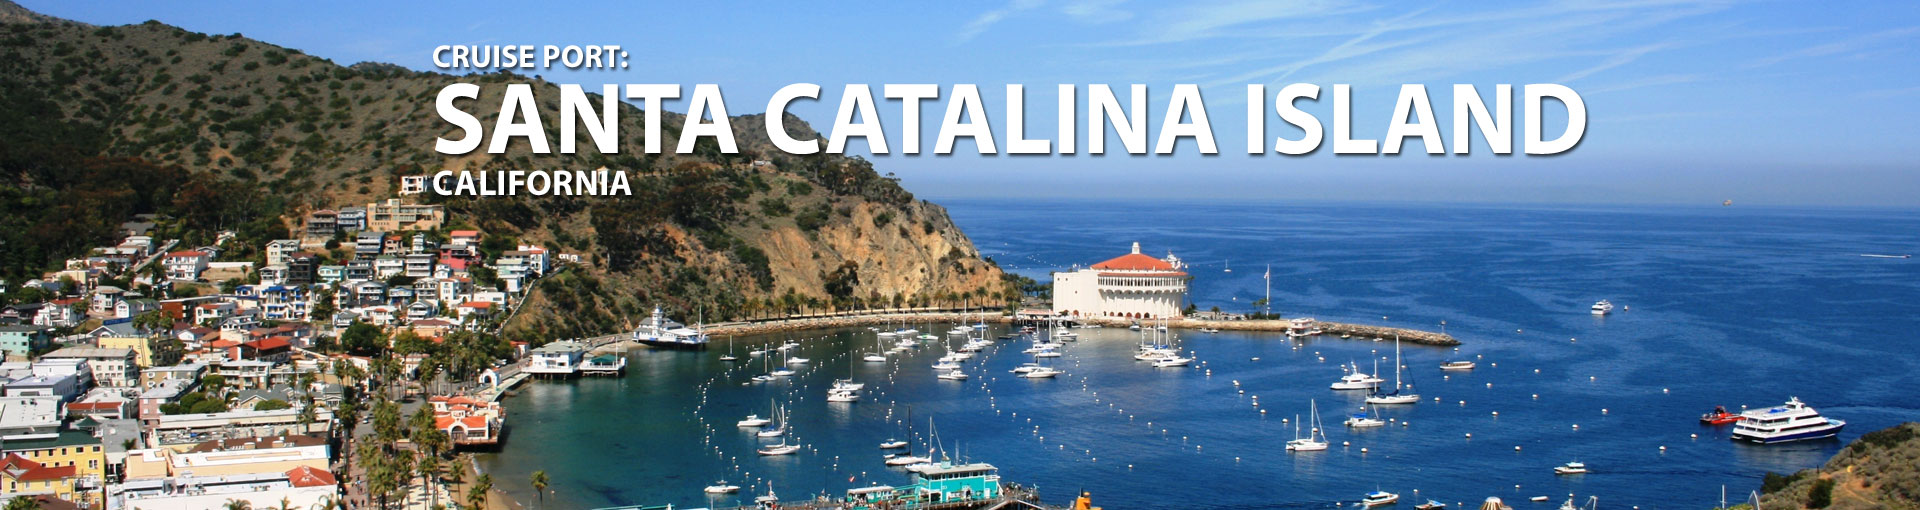 Cruises to Santa Catalina Island